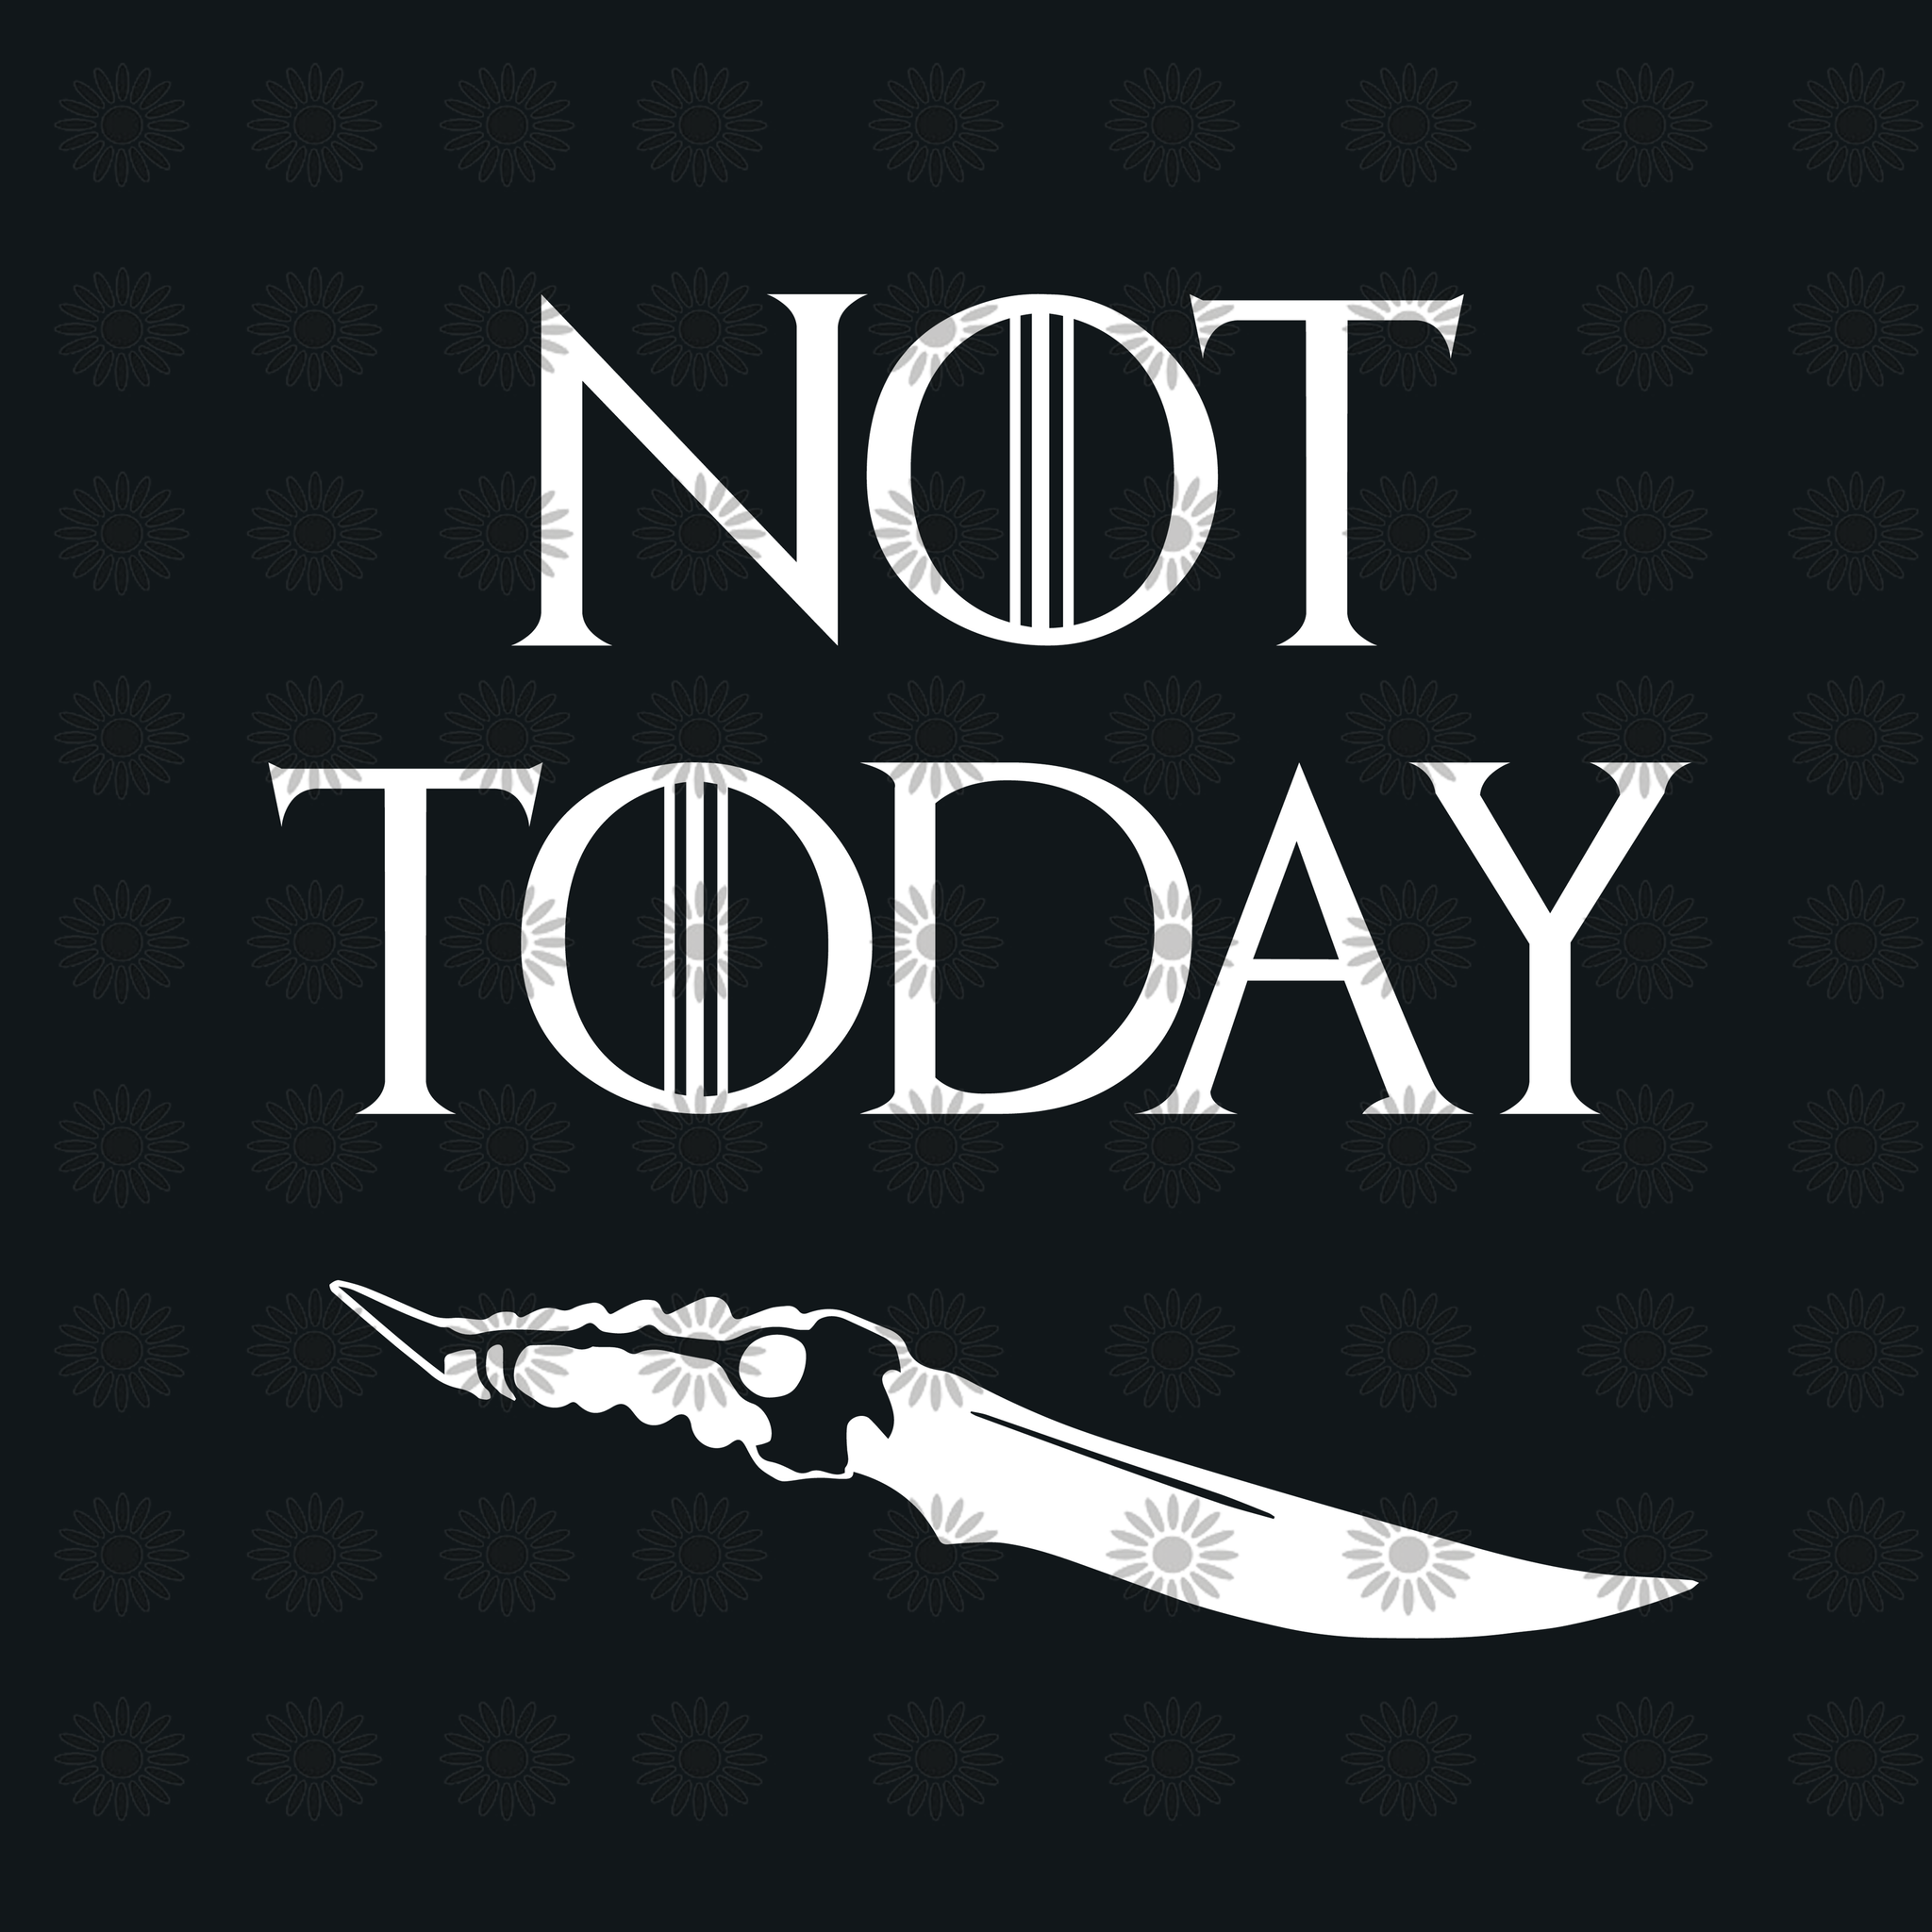 Not ToDay, Arya, Game of Thrones svg, Game of Thrones clipart, Game of Thrones silhouette svg, png, dxf, eps file